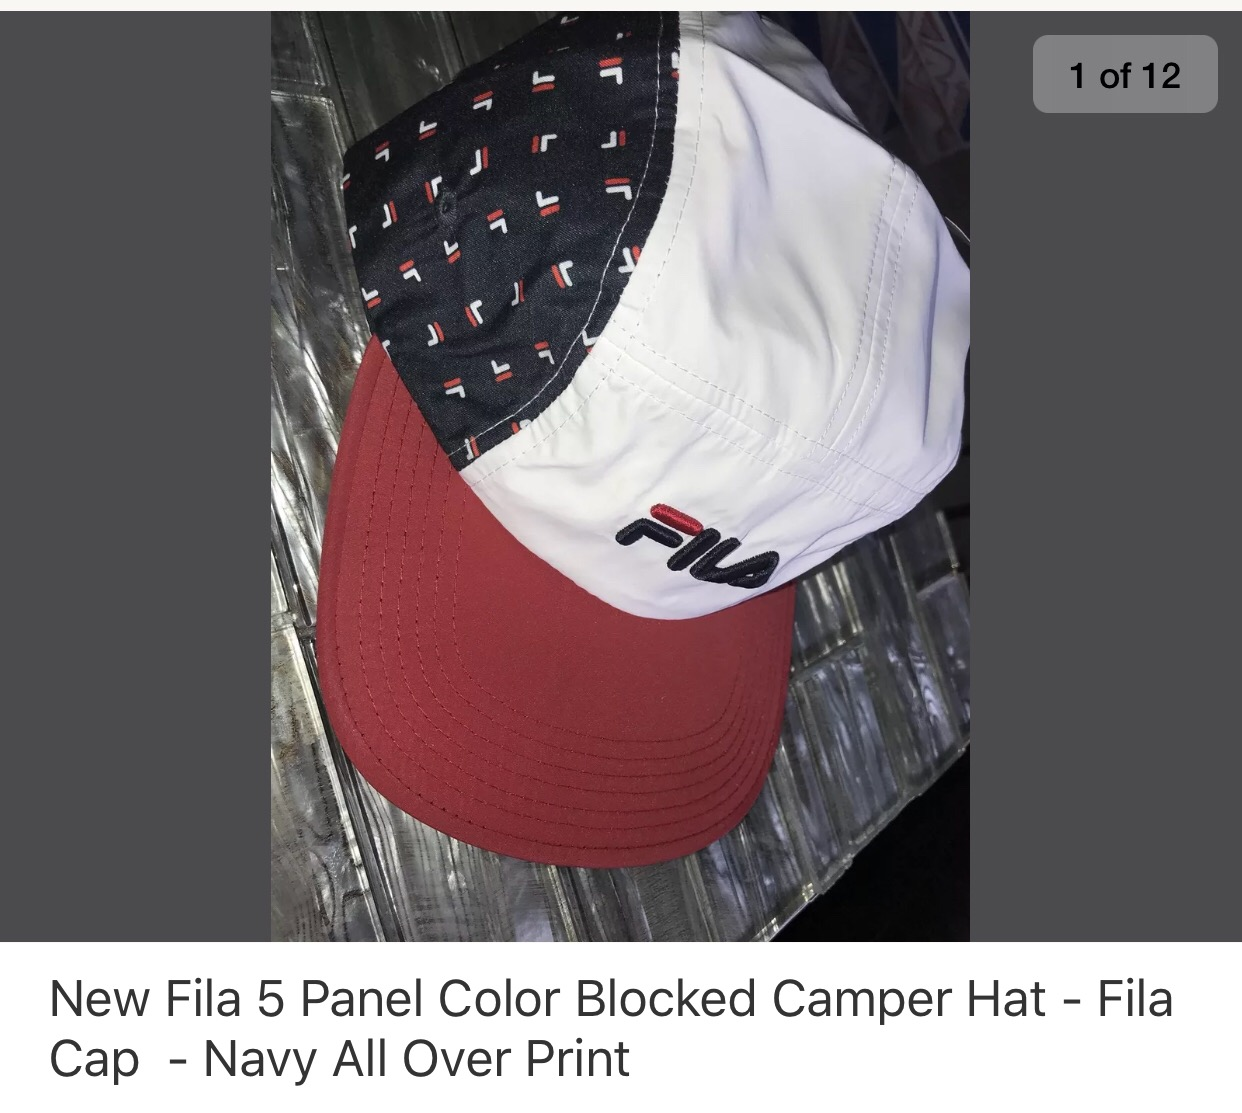 c642d628ef6 Fila All Over Print Size one size - Hats for Sale - Grailed